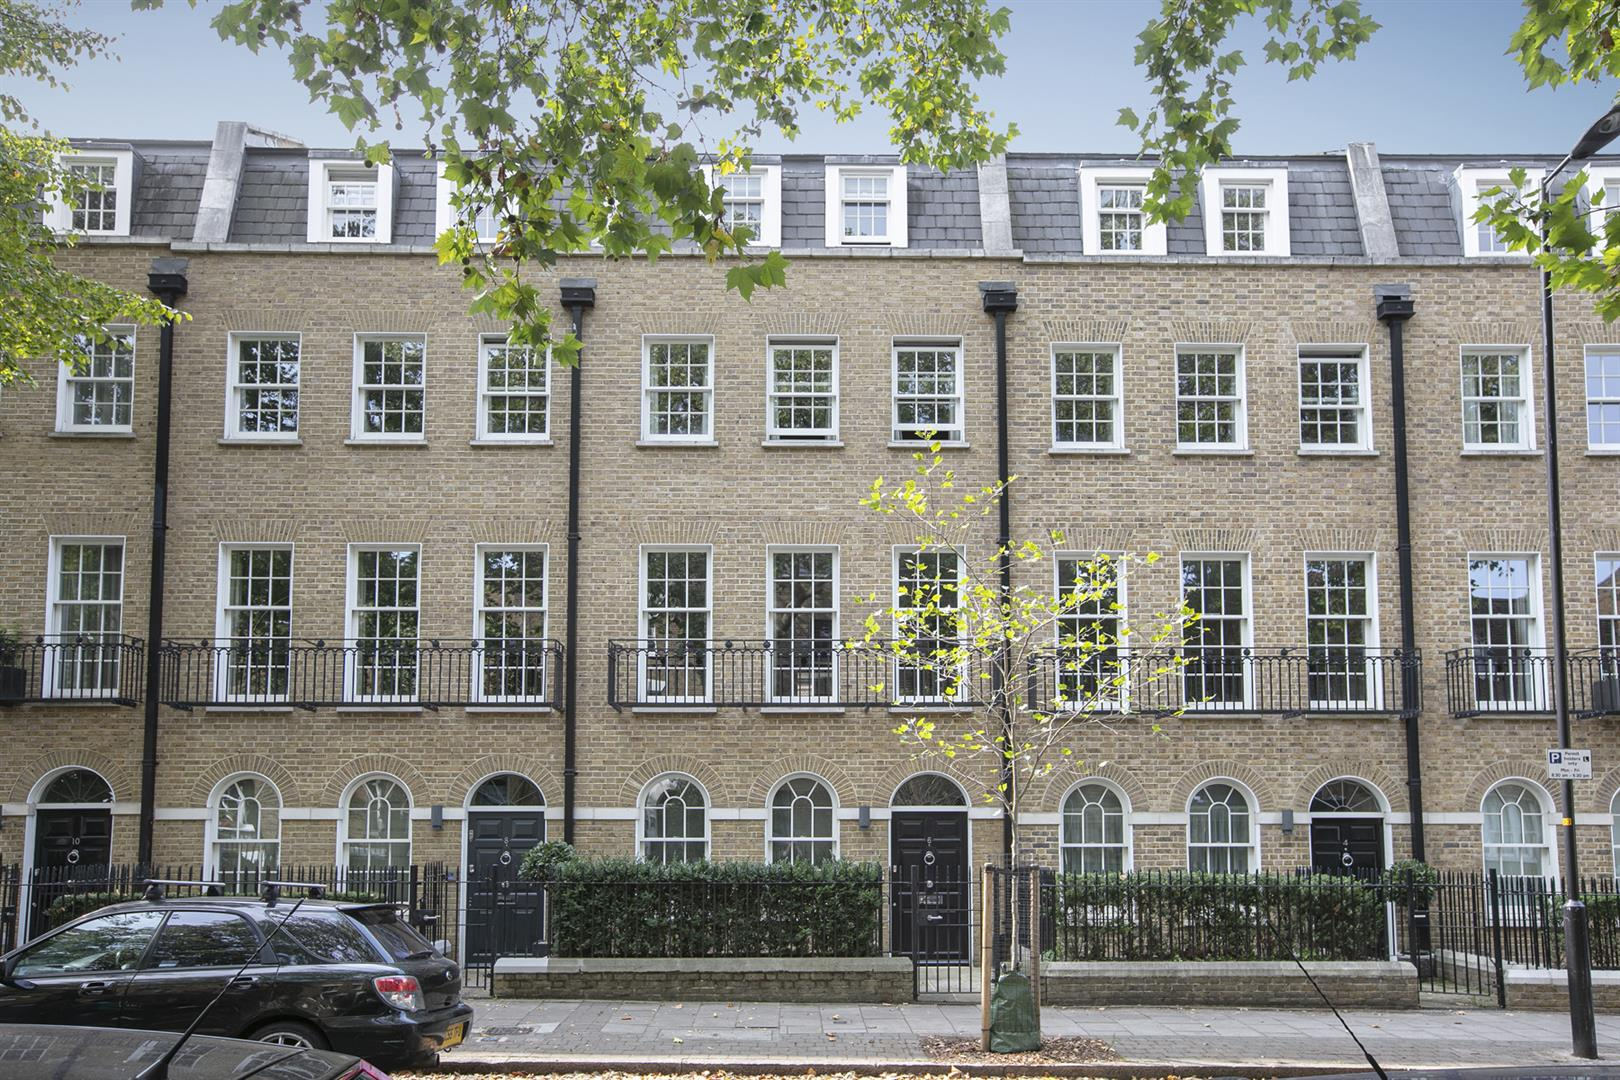 elegant terraced houses in Camberwell Grove, London